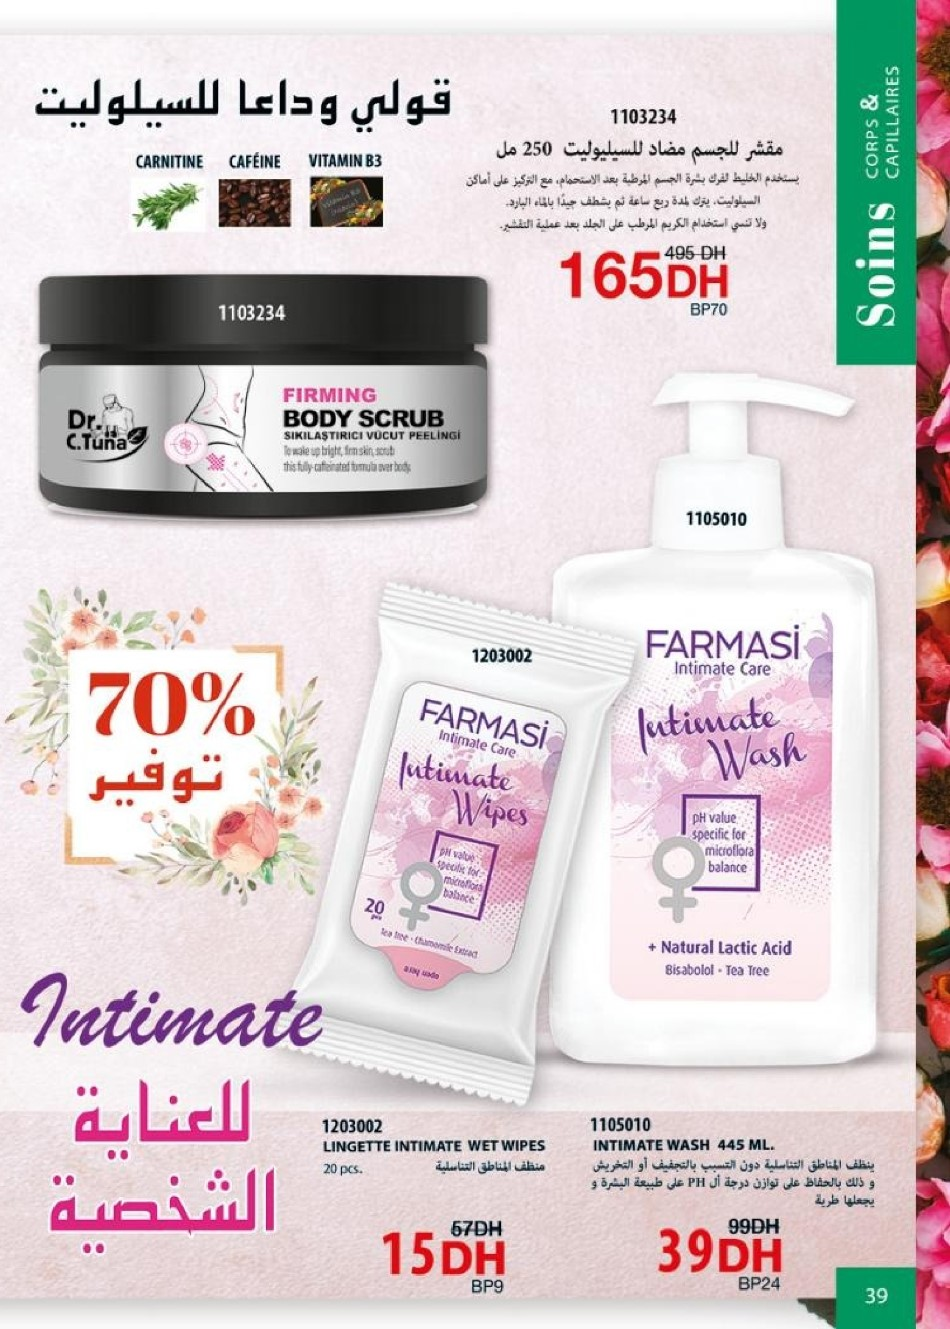 Catalogue Farmasi Maroc la beauté du printemps Avril 2019